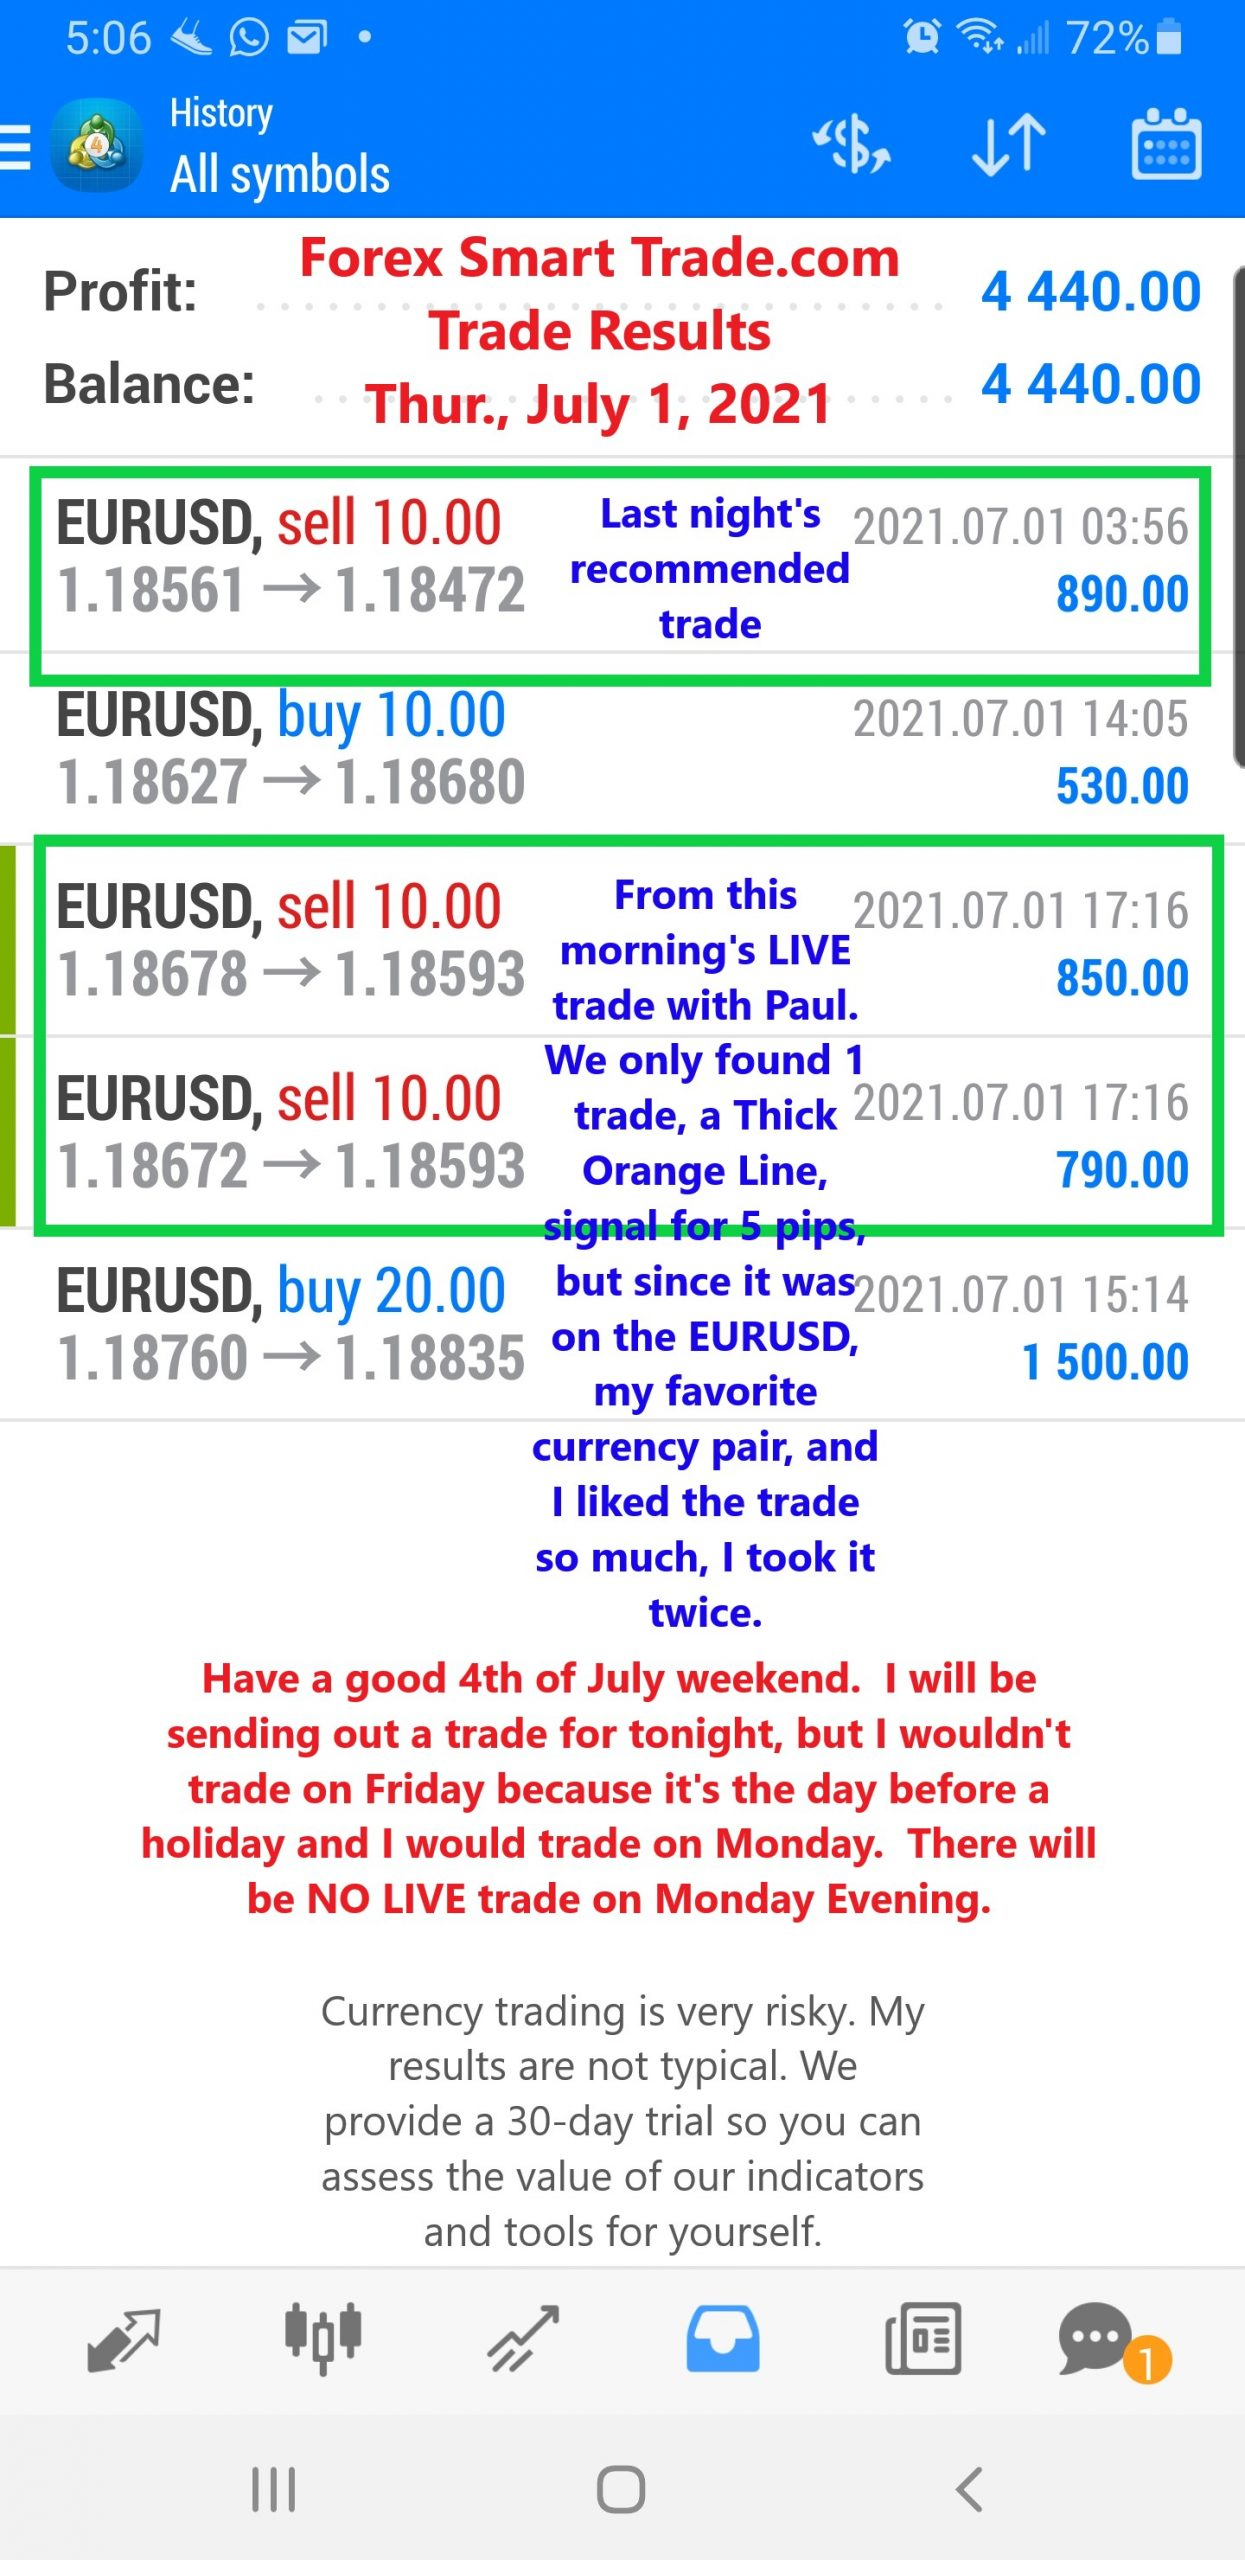 Forex Smart Trade Results July 1 2021